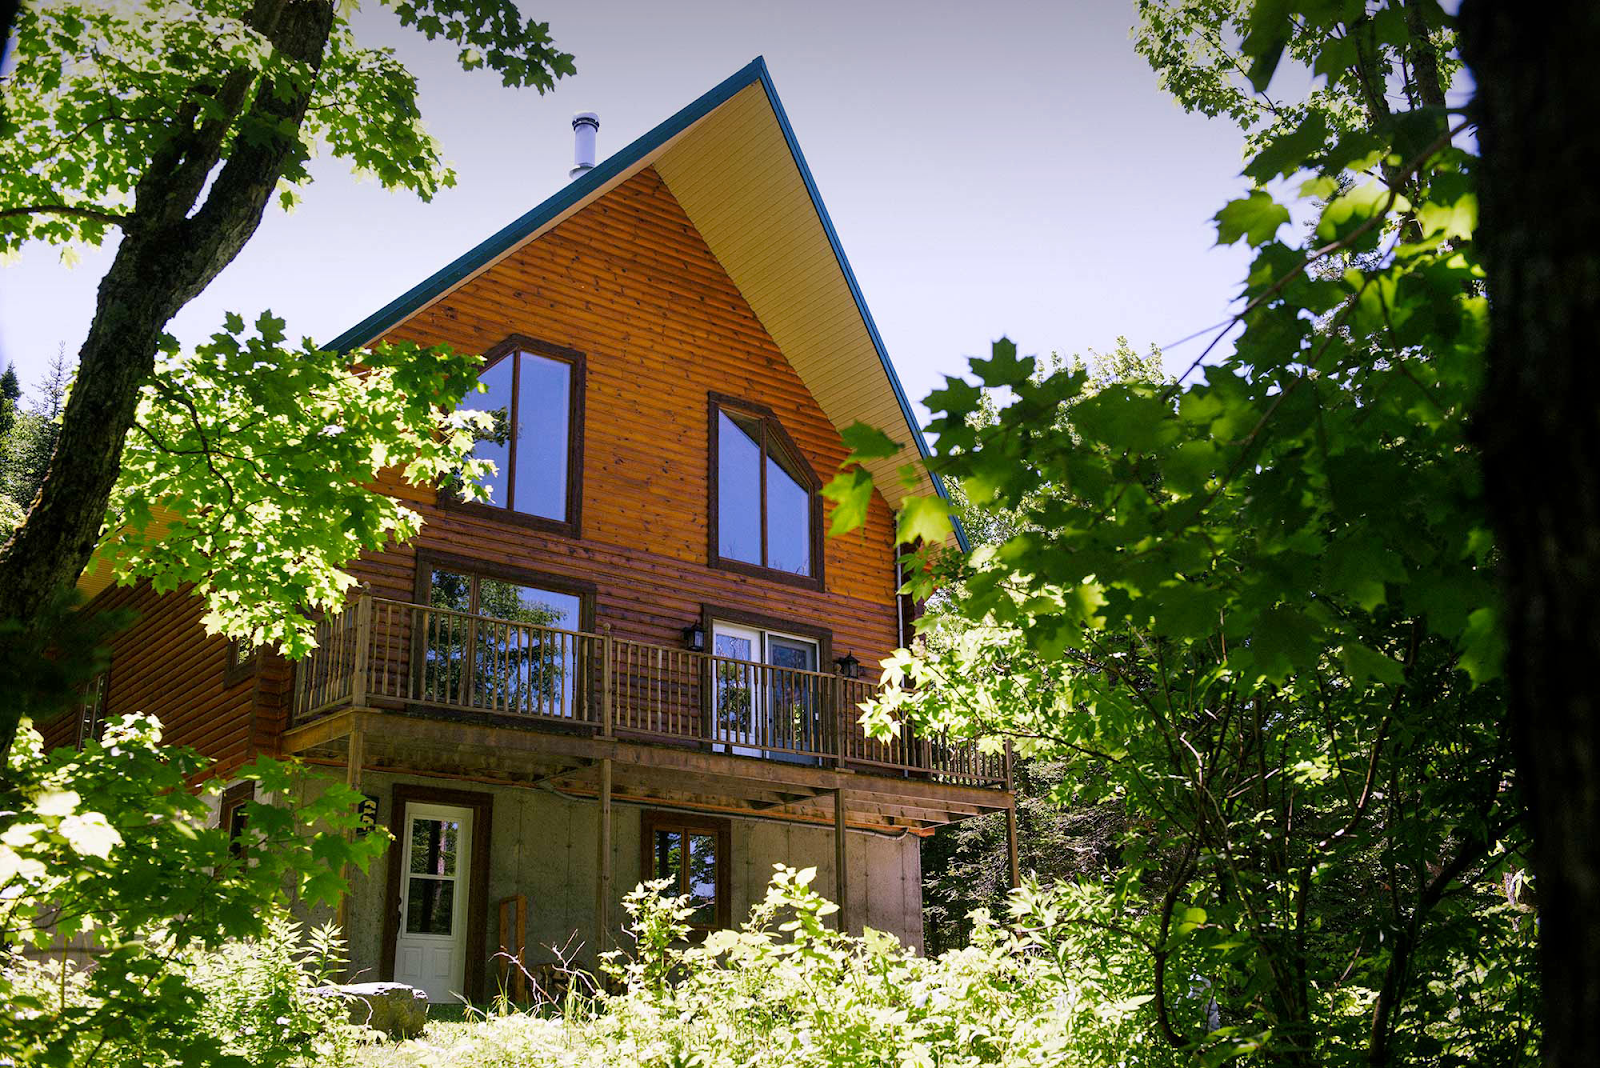 Cottages for rent with 6 bedrooms in Quebec #8